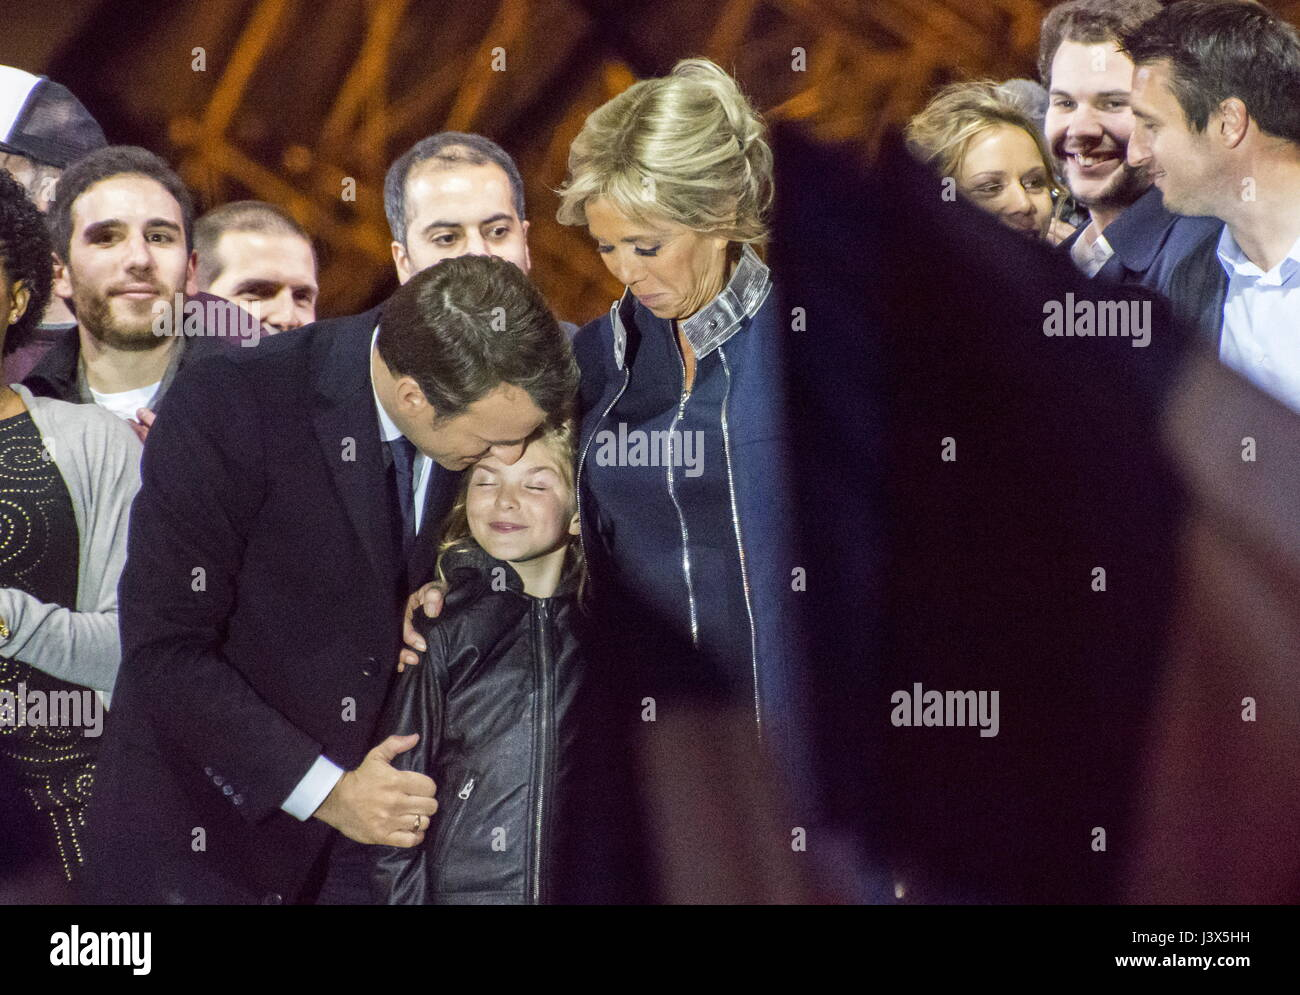 Emmanuel Macron Wife High Resolution Stock Photography And Images Alamy